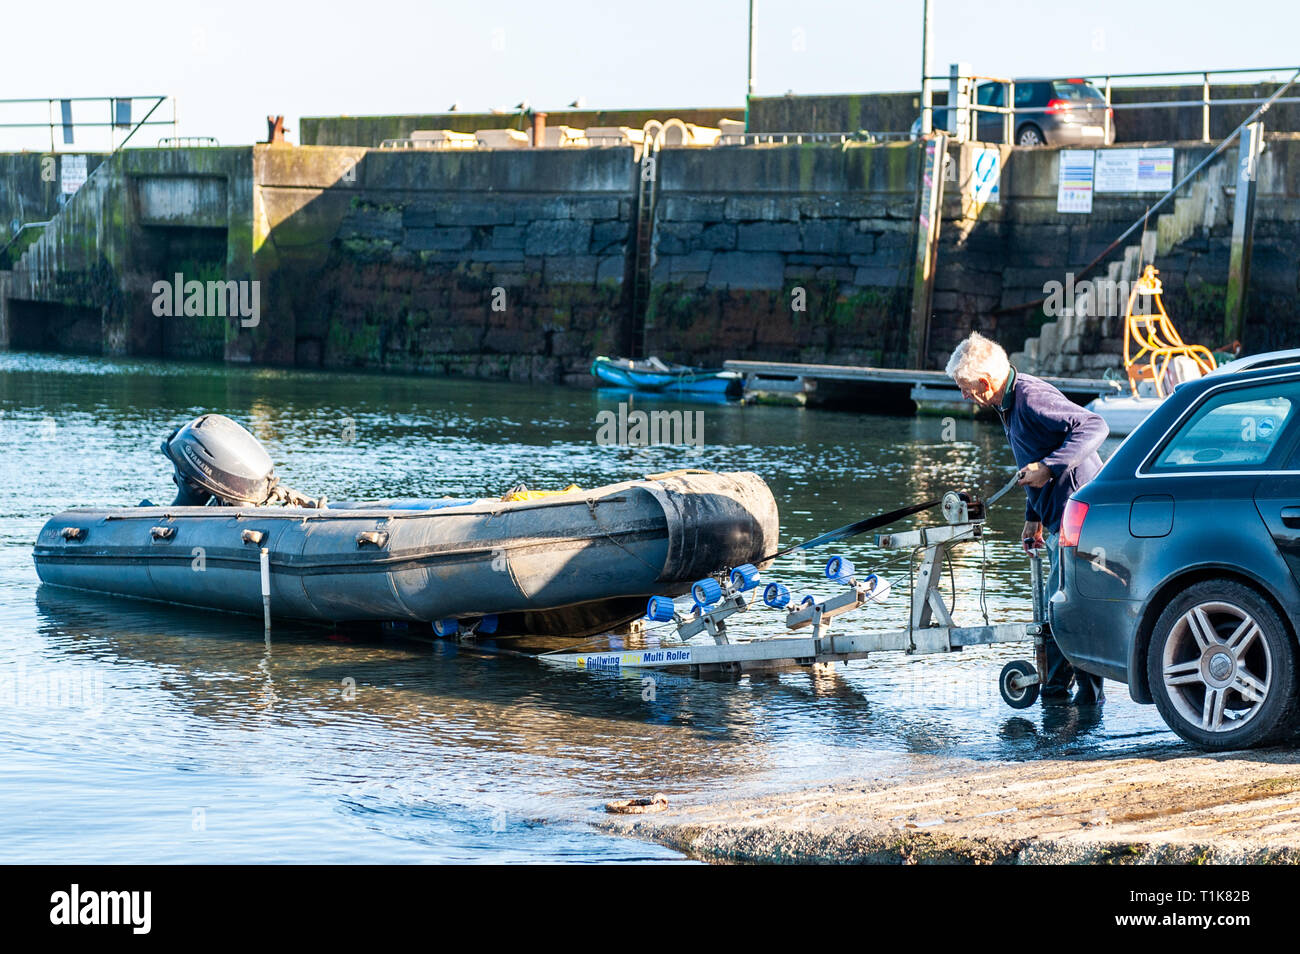 Schull, West Cork, Ireland. 27th March, 2019. A man launches his RIB off Schull Harbour slipway at the end of a beautiful day in West Cork. The remainder of the day will be sunny with highs of 12° Celsius. Credit: Andy Gibson/Alamy Live News. - Stock Image